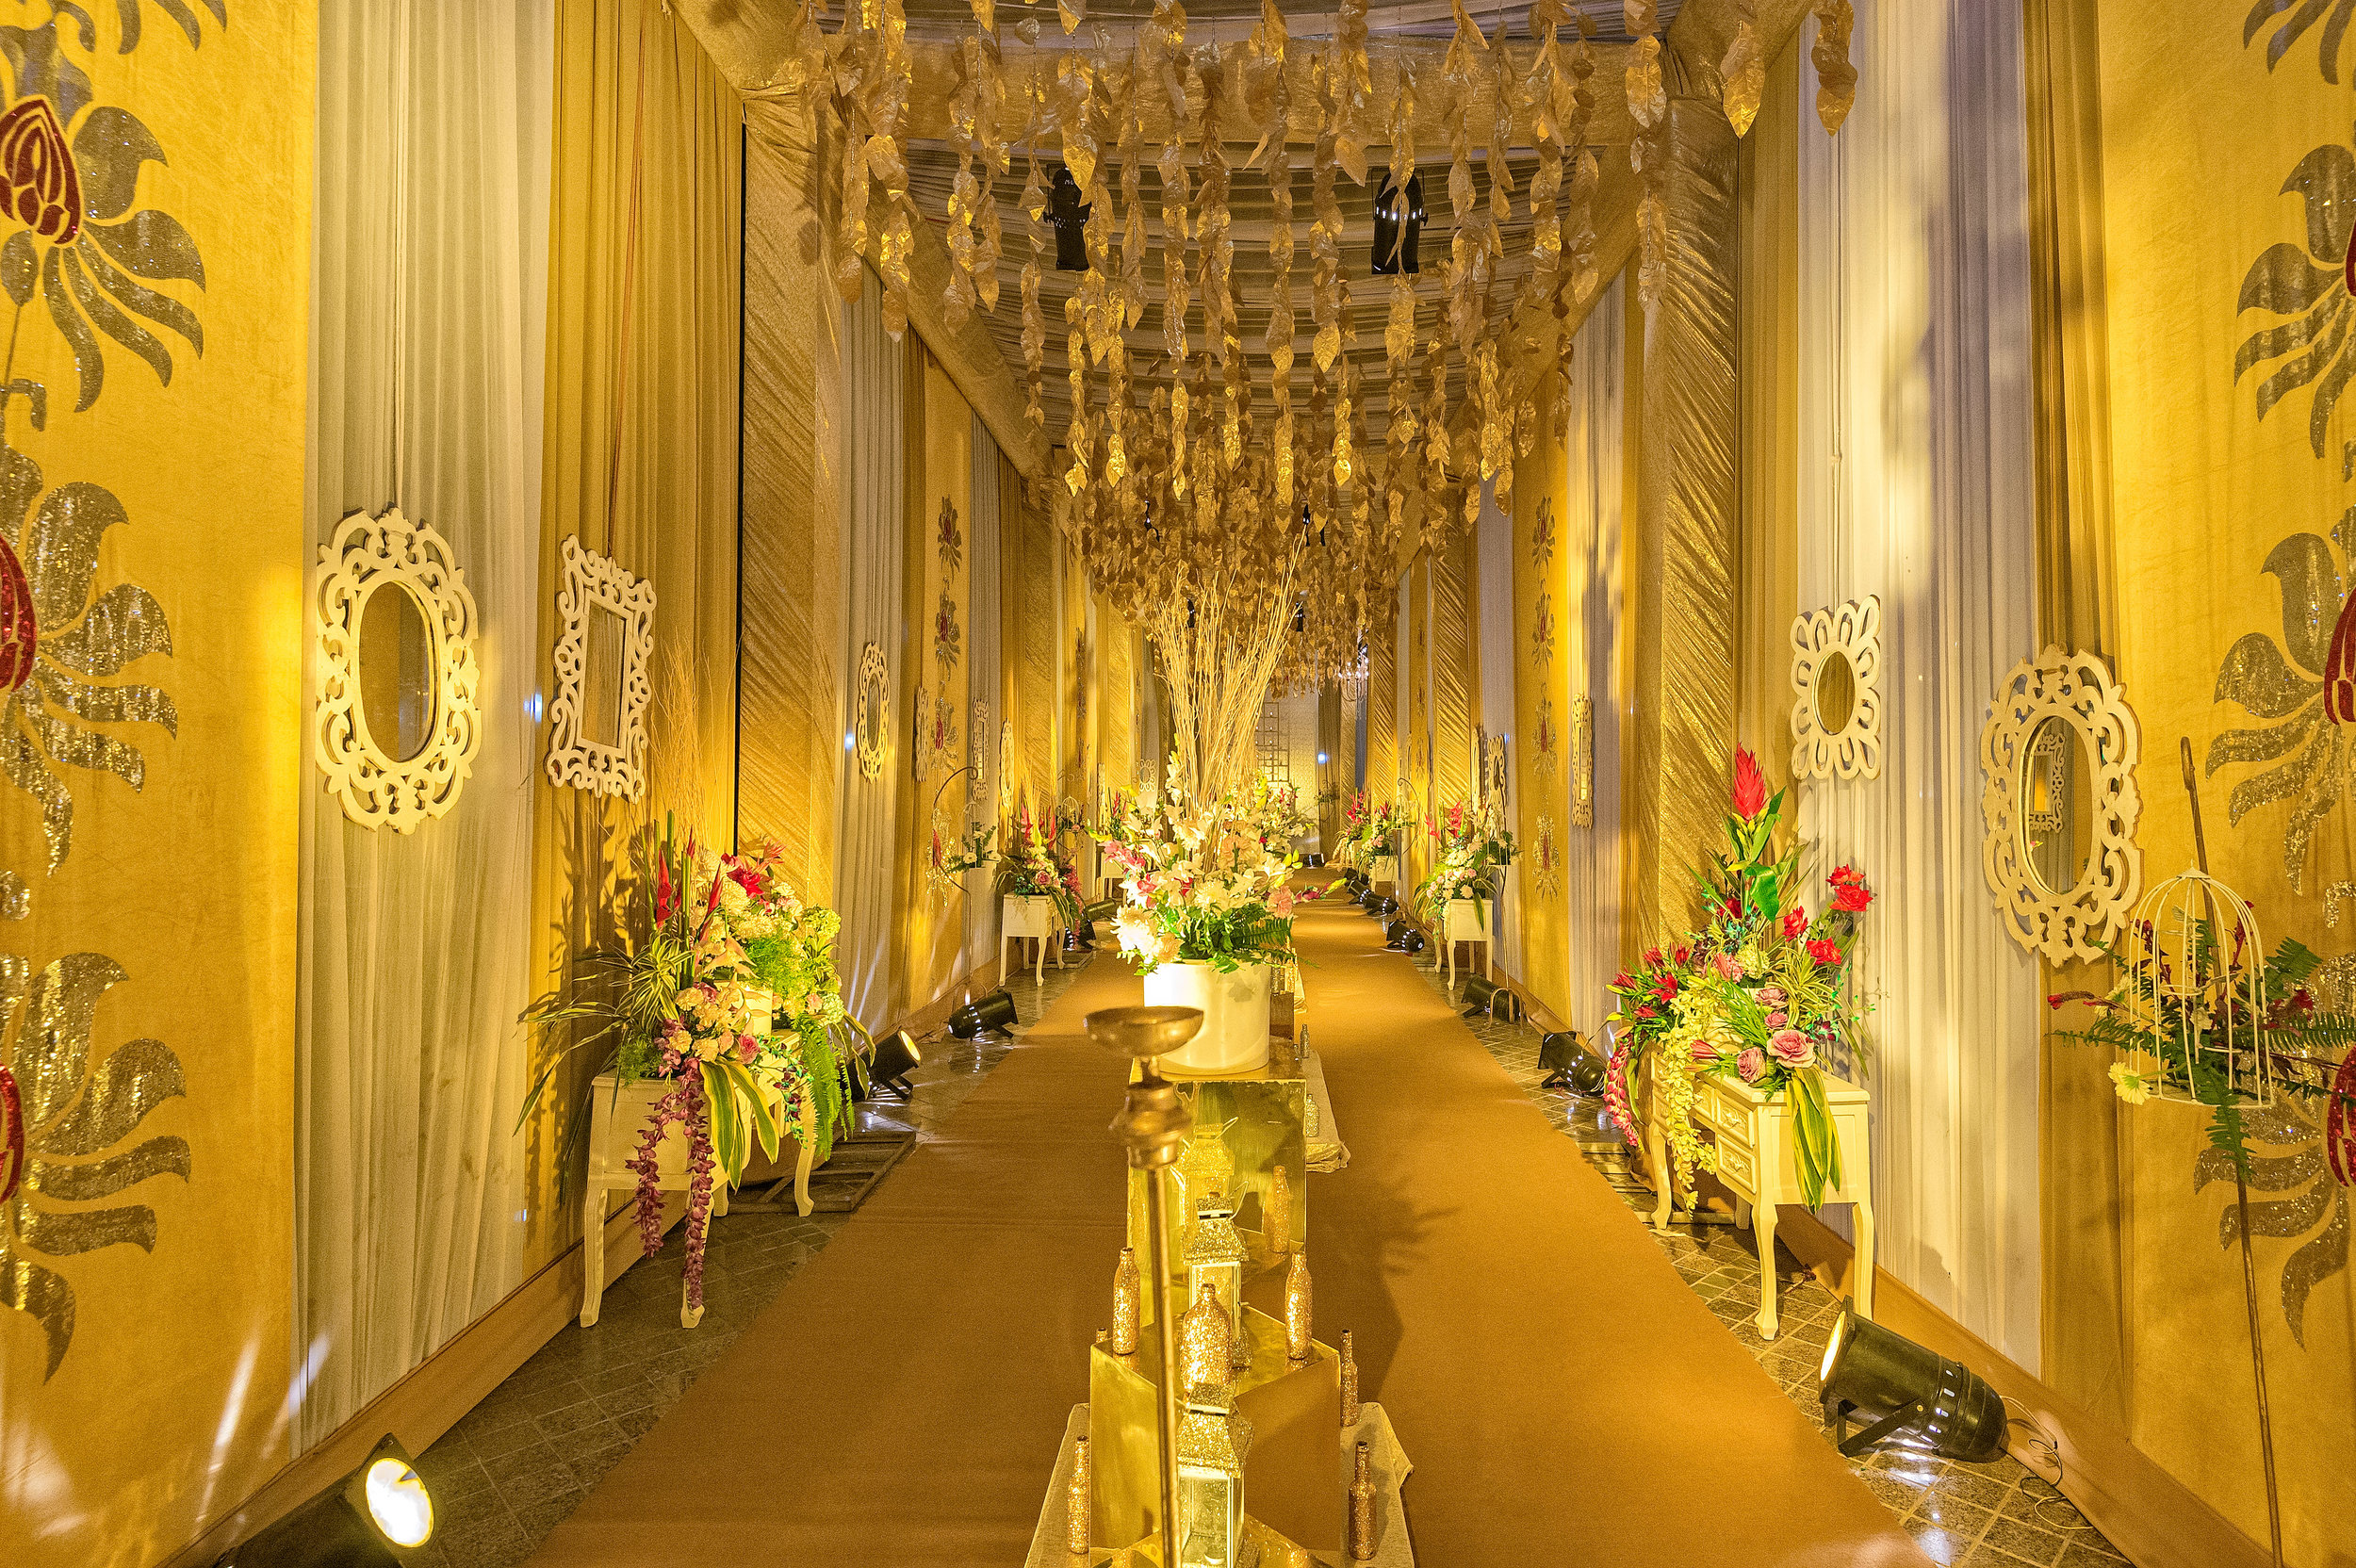 The extravagant, classy and opulent entrance to the main reception area. Look at all that gold.